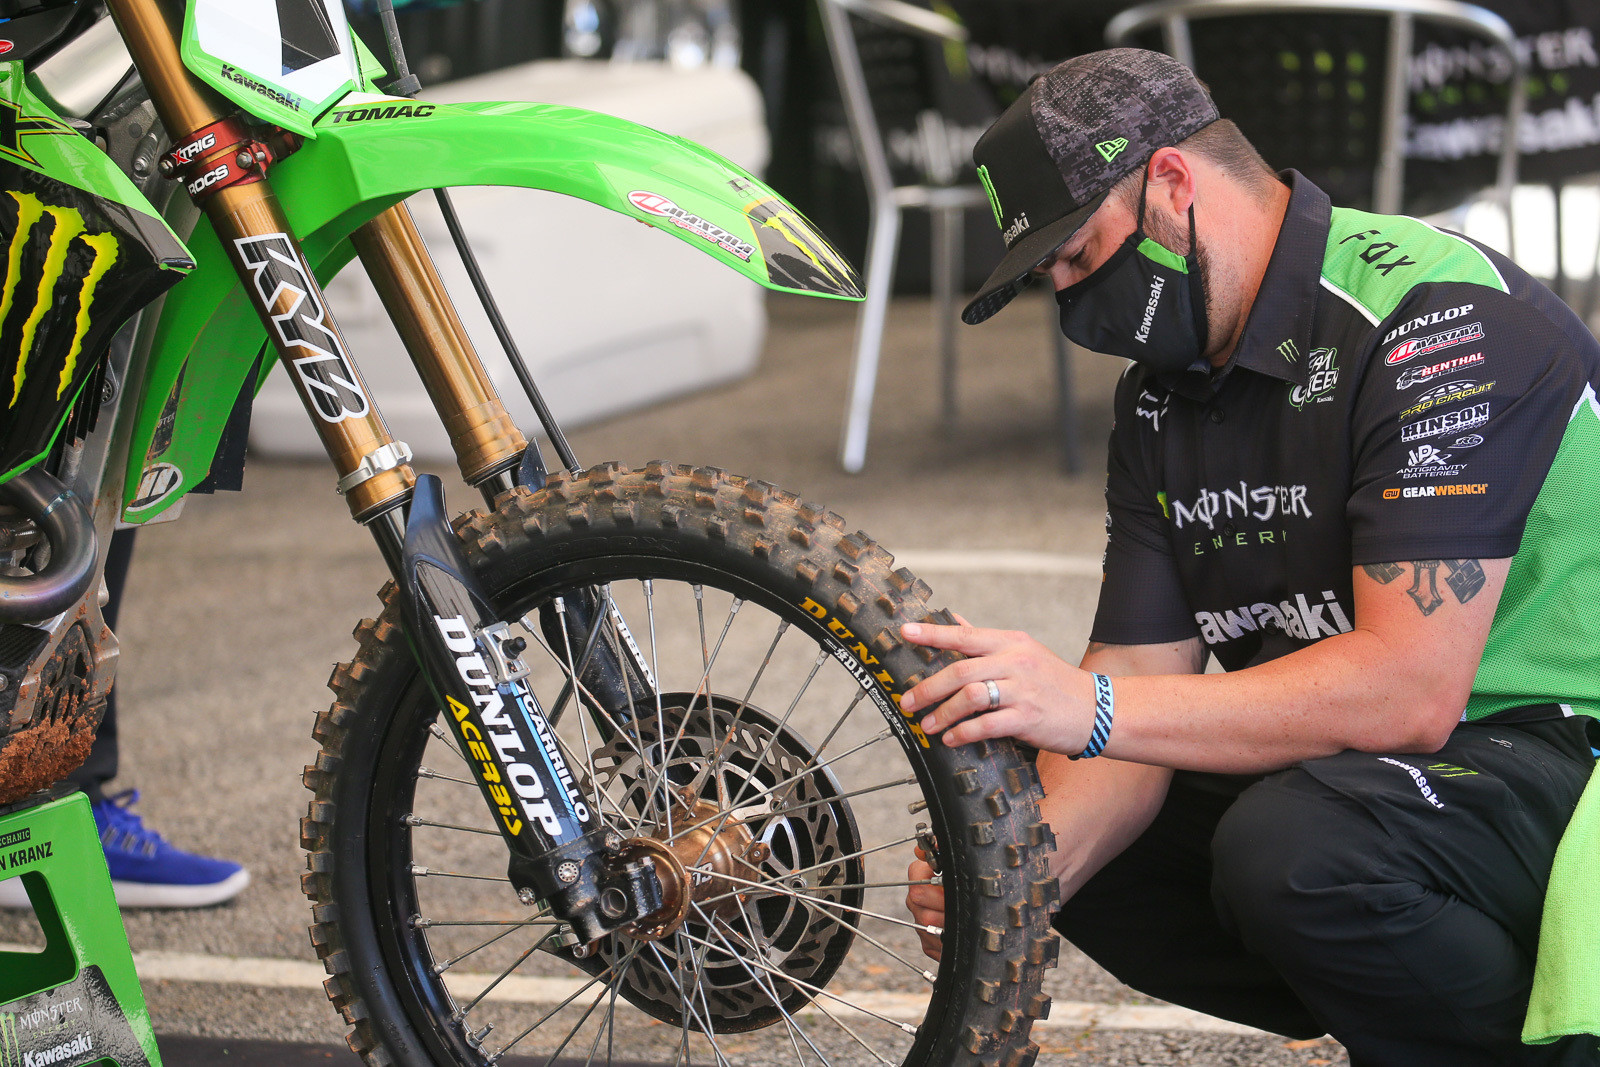 One spoke at a time (yep, with a spoke torque wrench), and one bolt at a time. Brian Kranz getting it done for Eli Tomac.